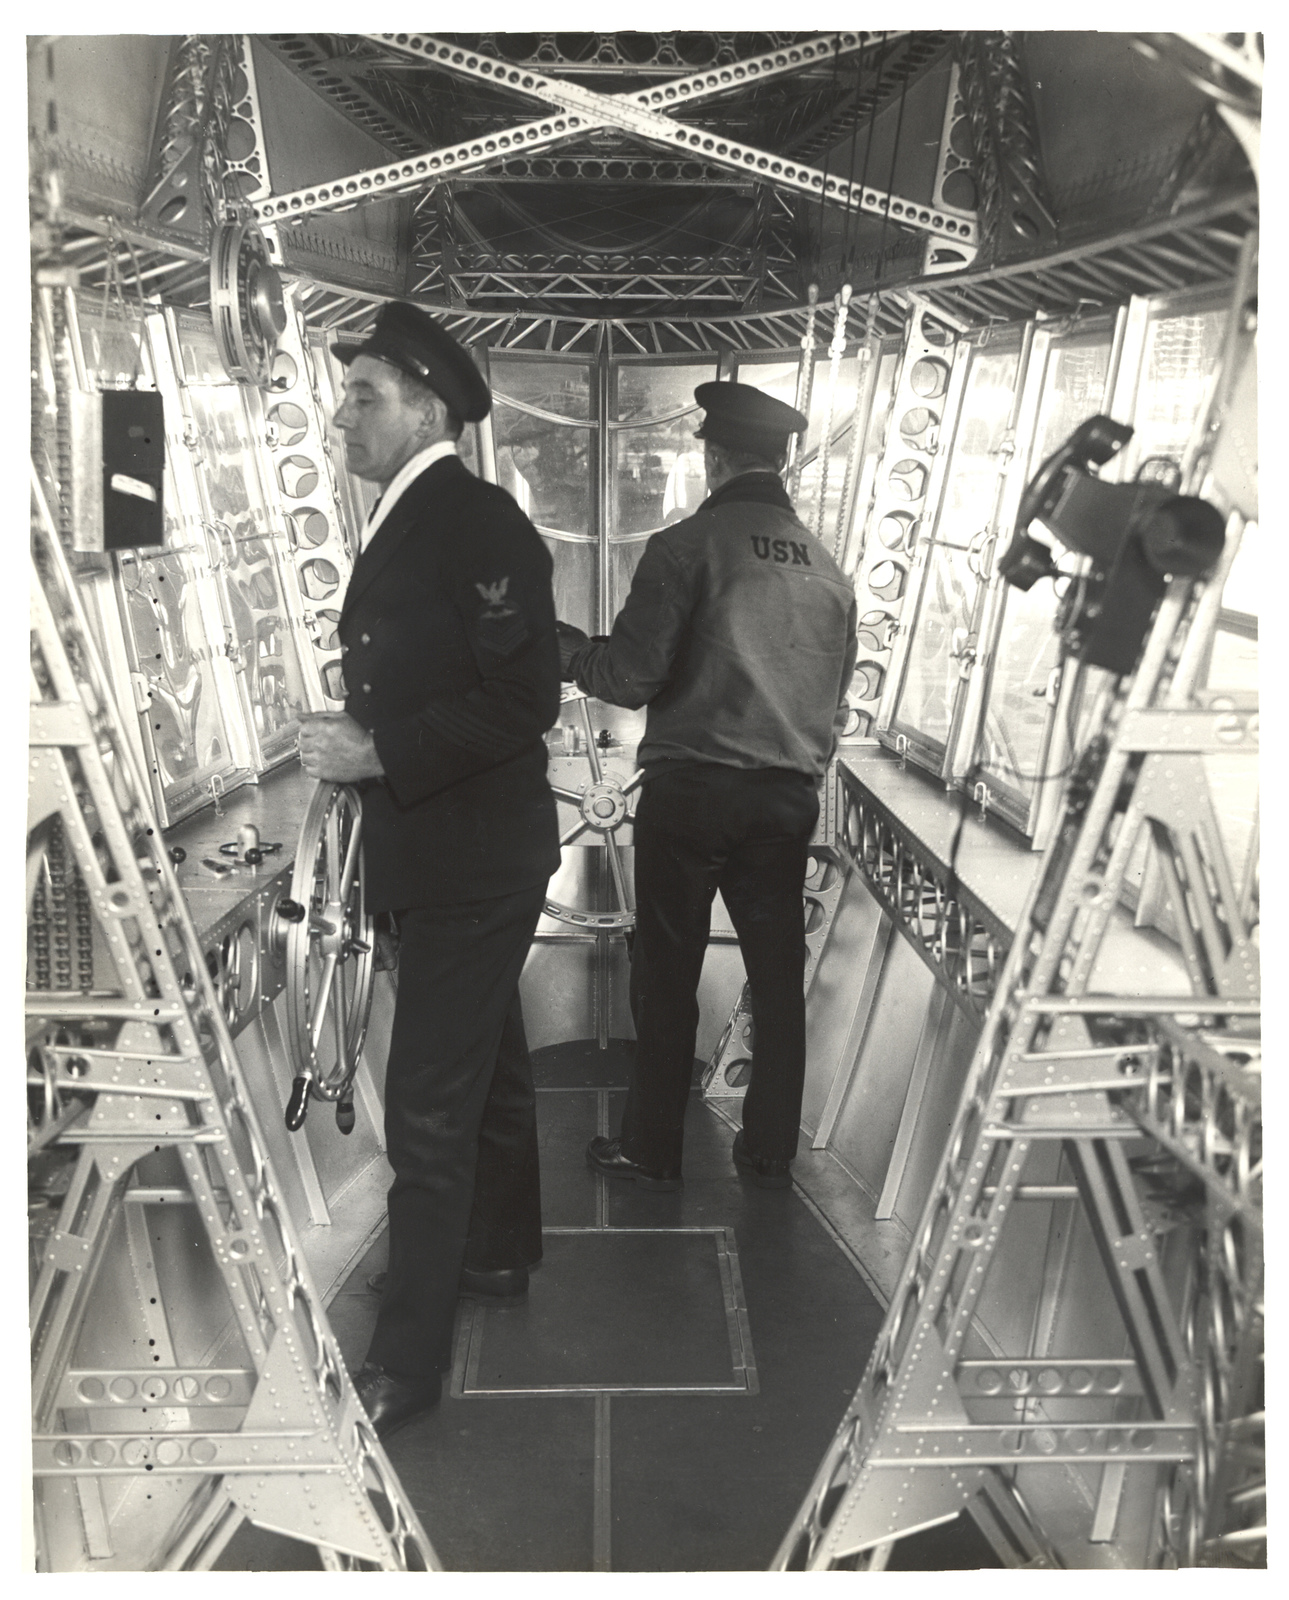 Photograph of Emergency Control Station of a Dirigible